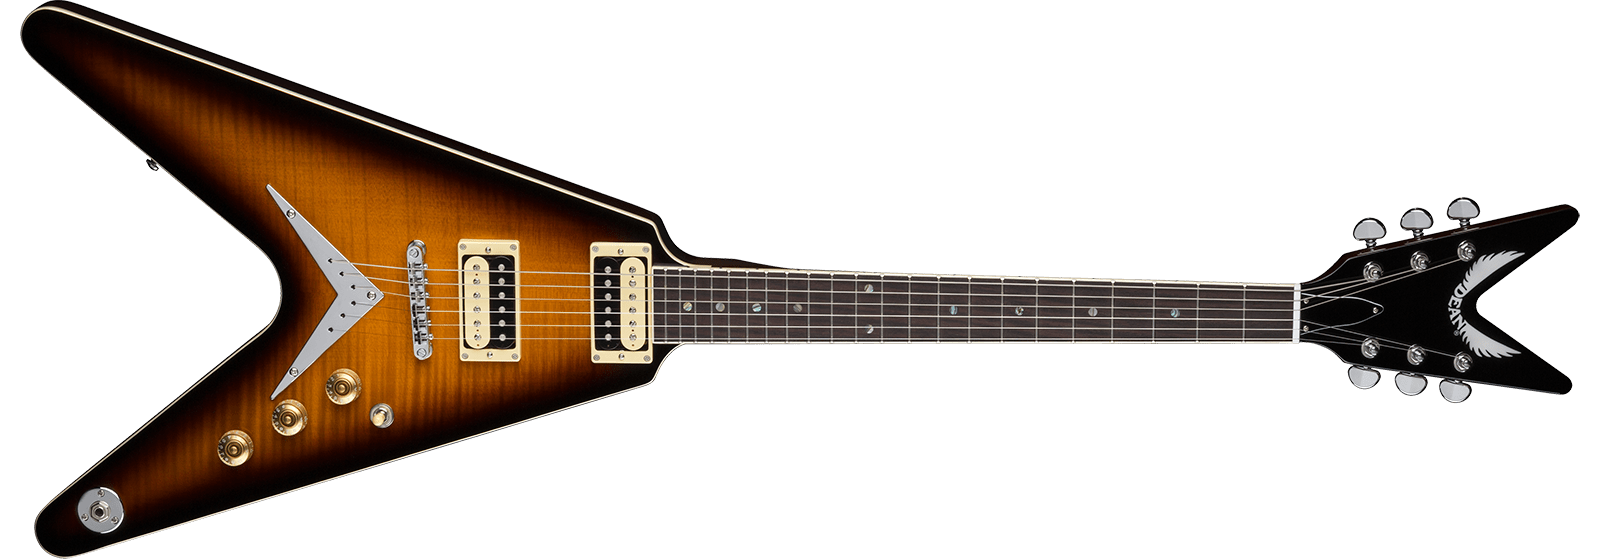 Short article about sheet guitar